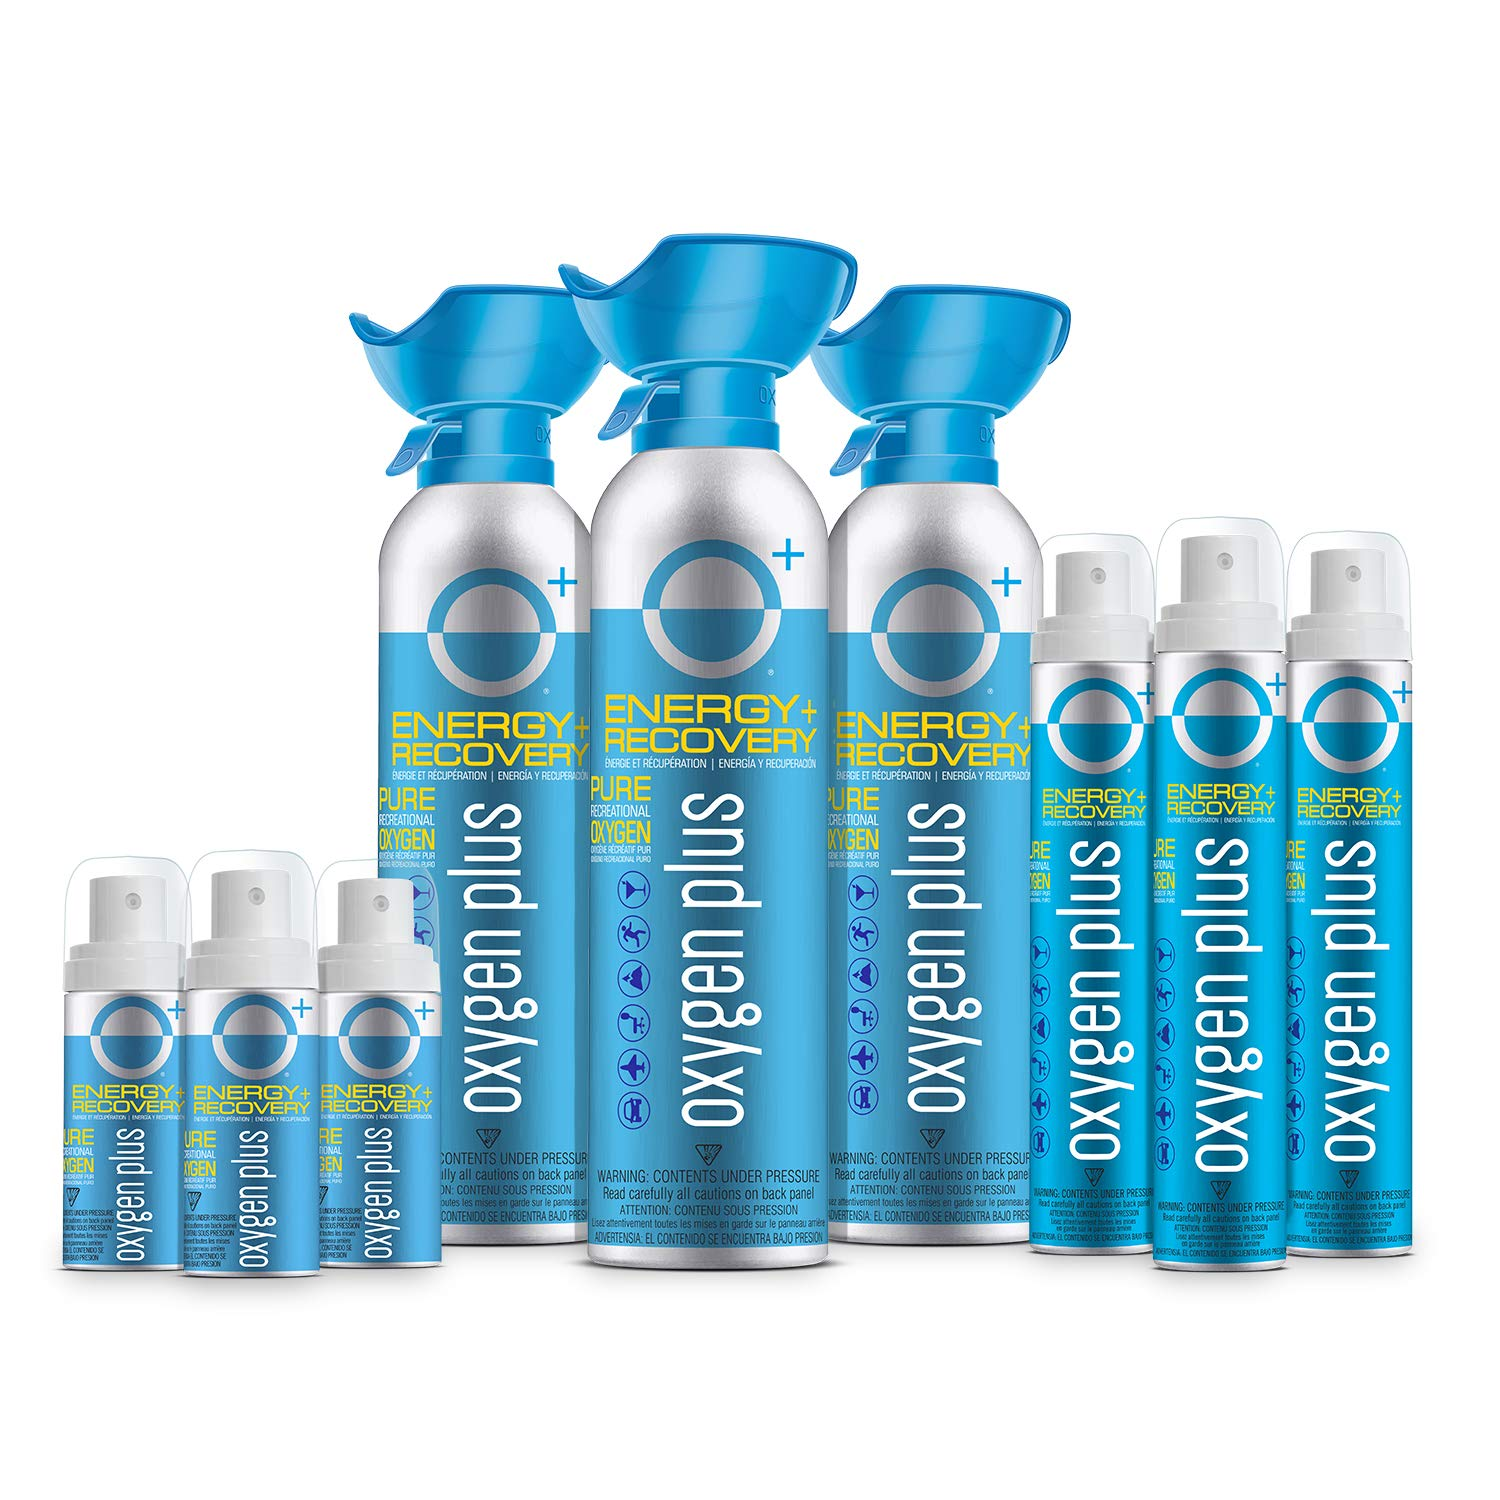 Oxygen Plus Oxygen Cans Trifecta Pack: 3 O+ Biggi, 3 O+ Skinni & 3 O+ Mini - Boost Oxygen Levels with Portable & Concentrated Recreational Oxygen for Altitude Performance & Energy by Oxygen Plus